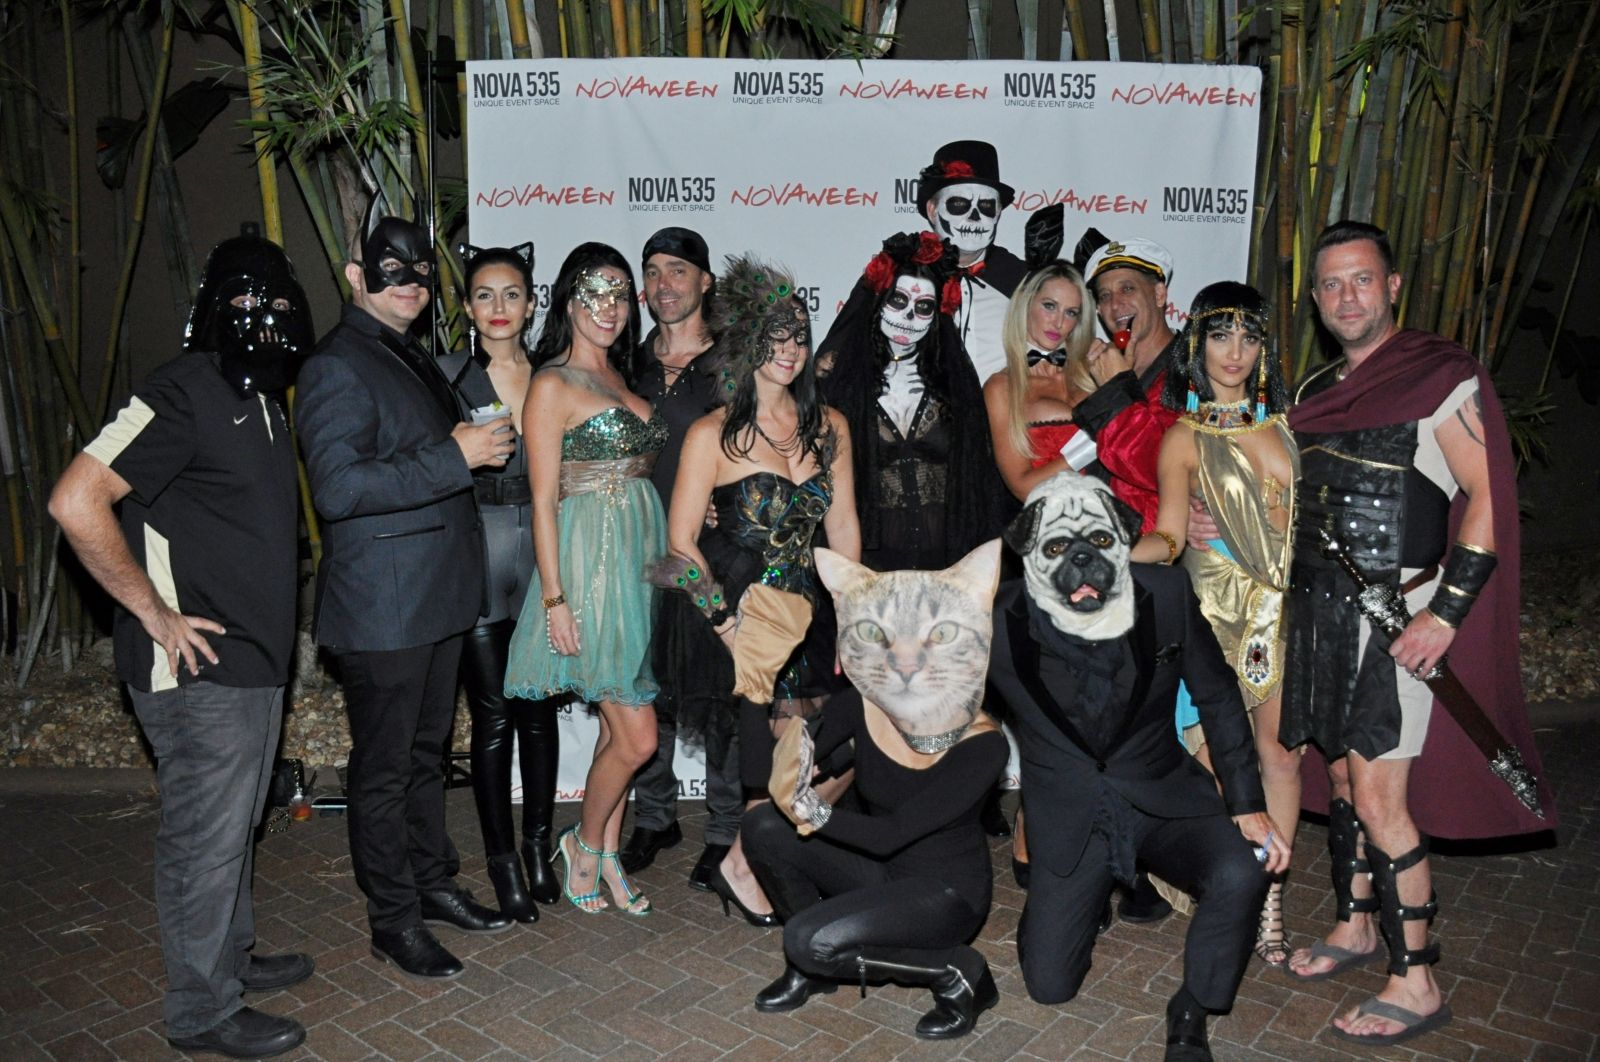 Our Friendly Freakshow Novaween He11even ensured we all celebrated 11 years of Downtown St. Pete's favorite Halloween Party Novaween on October 20, 2017 at historic DTSP venue NOVA 535